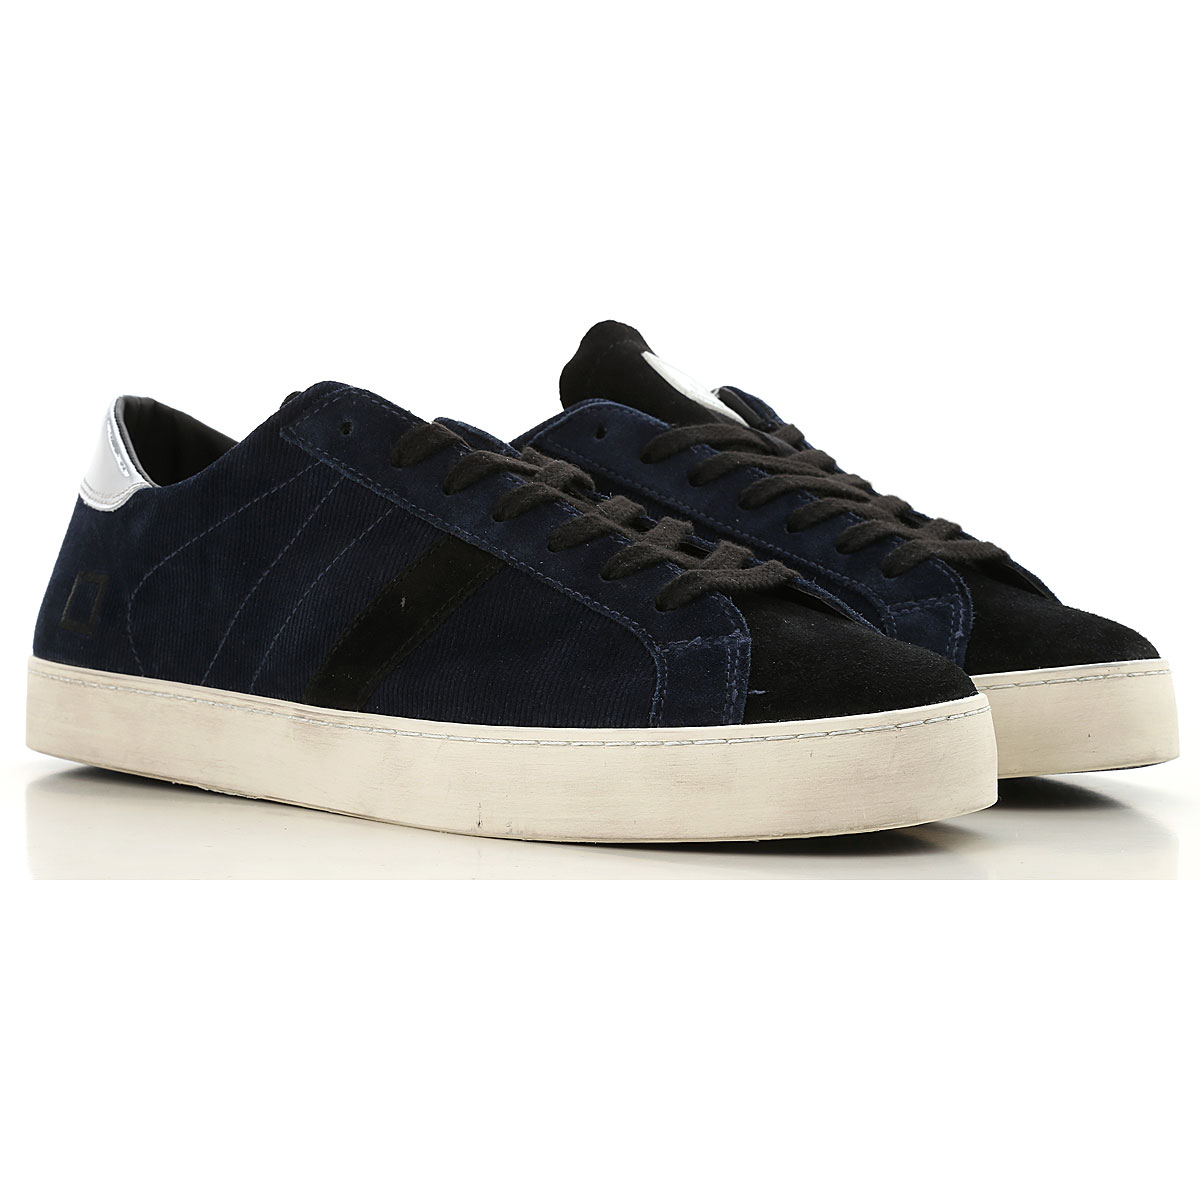 D.A.T.E. Sneakers for Men On Sale, Night Blue, Leather, 2019, 7